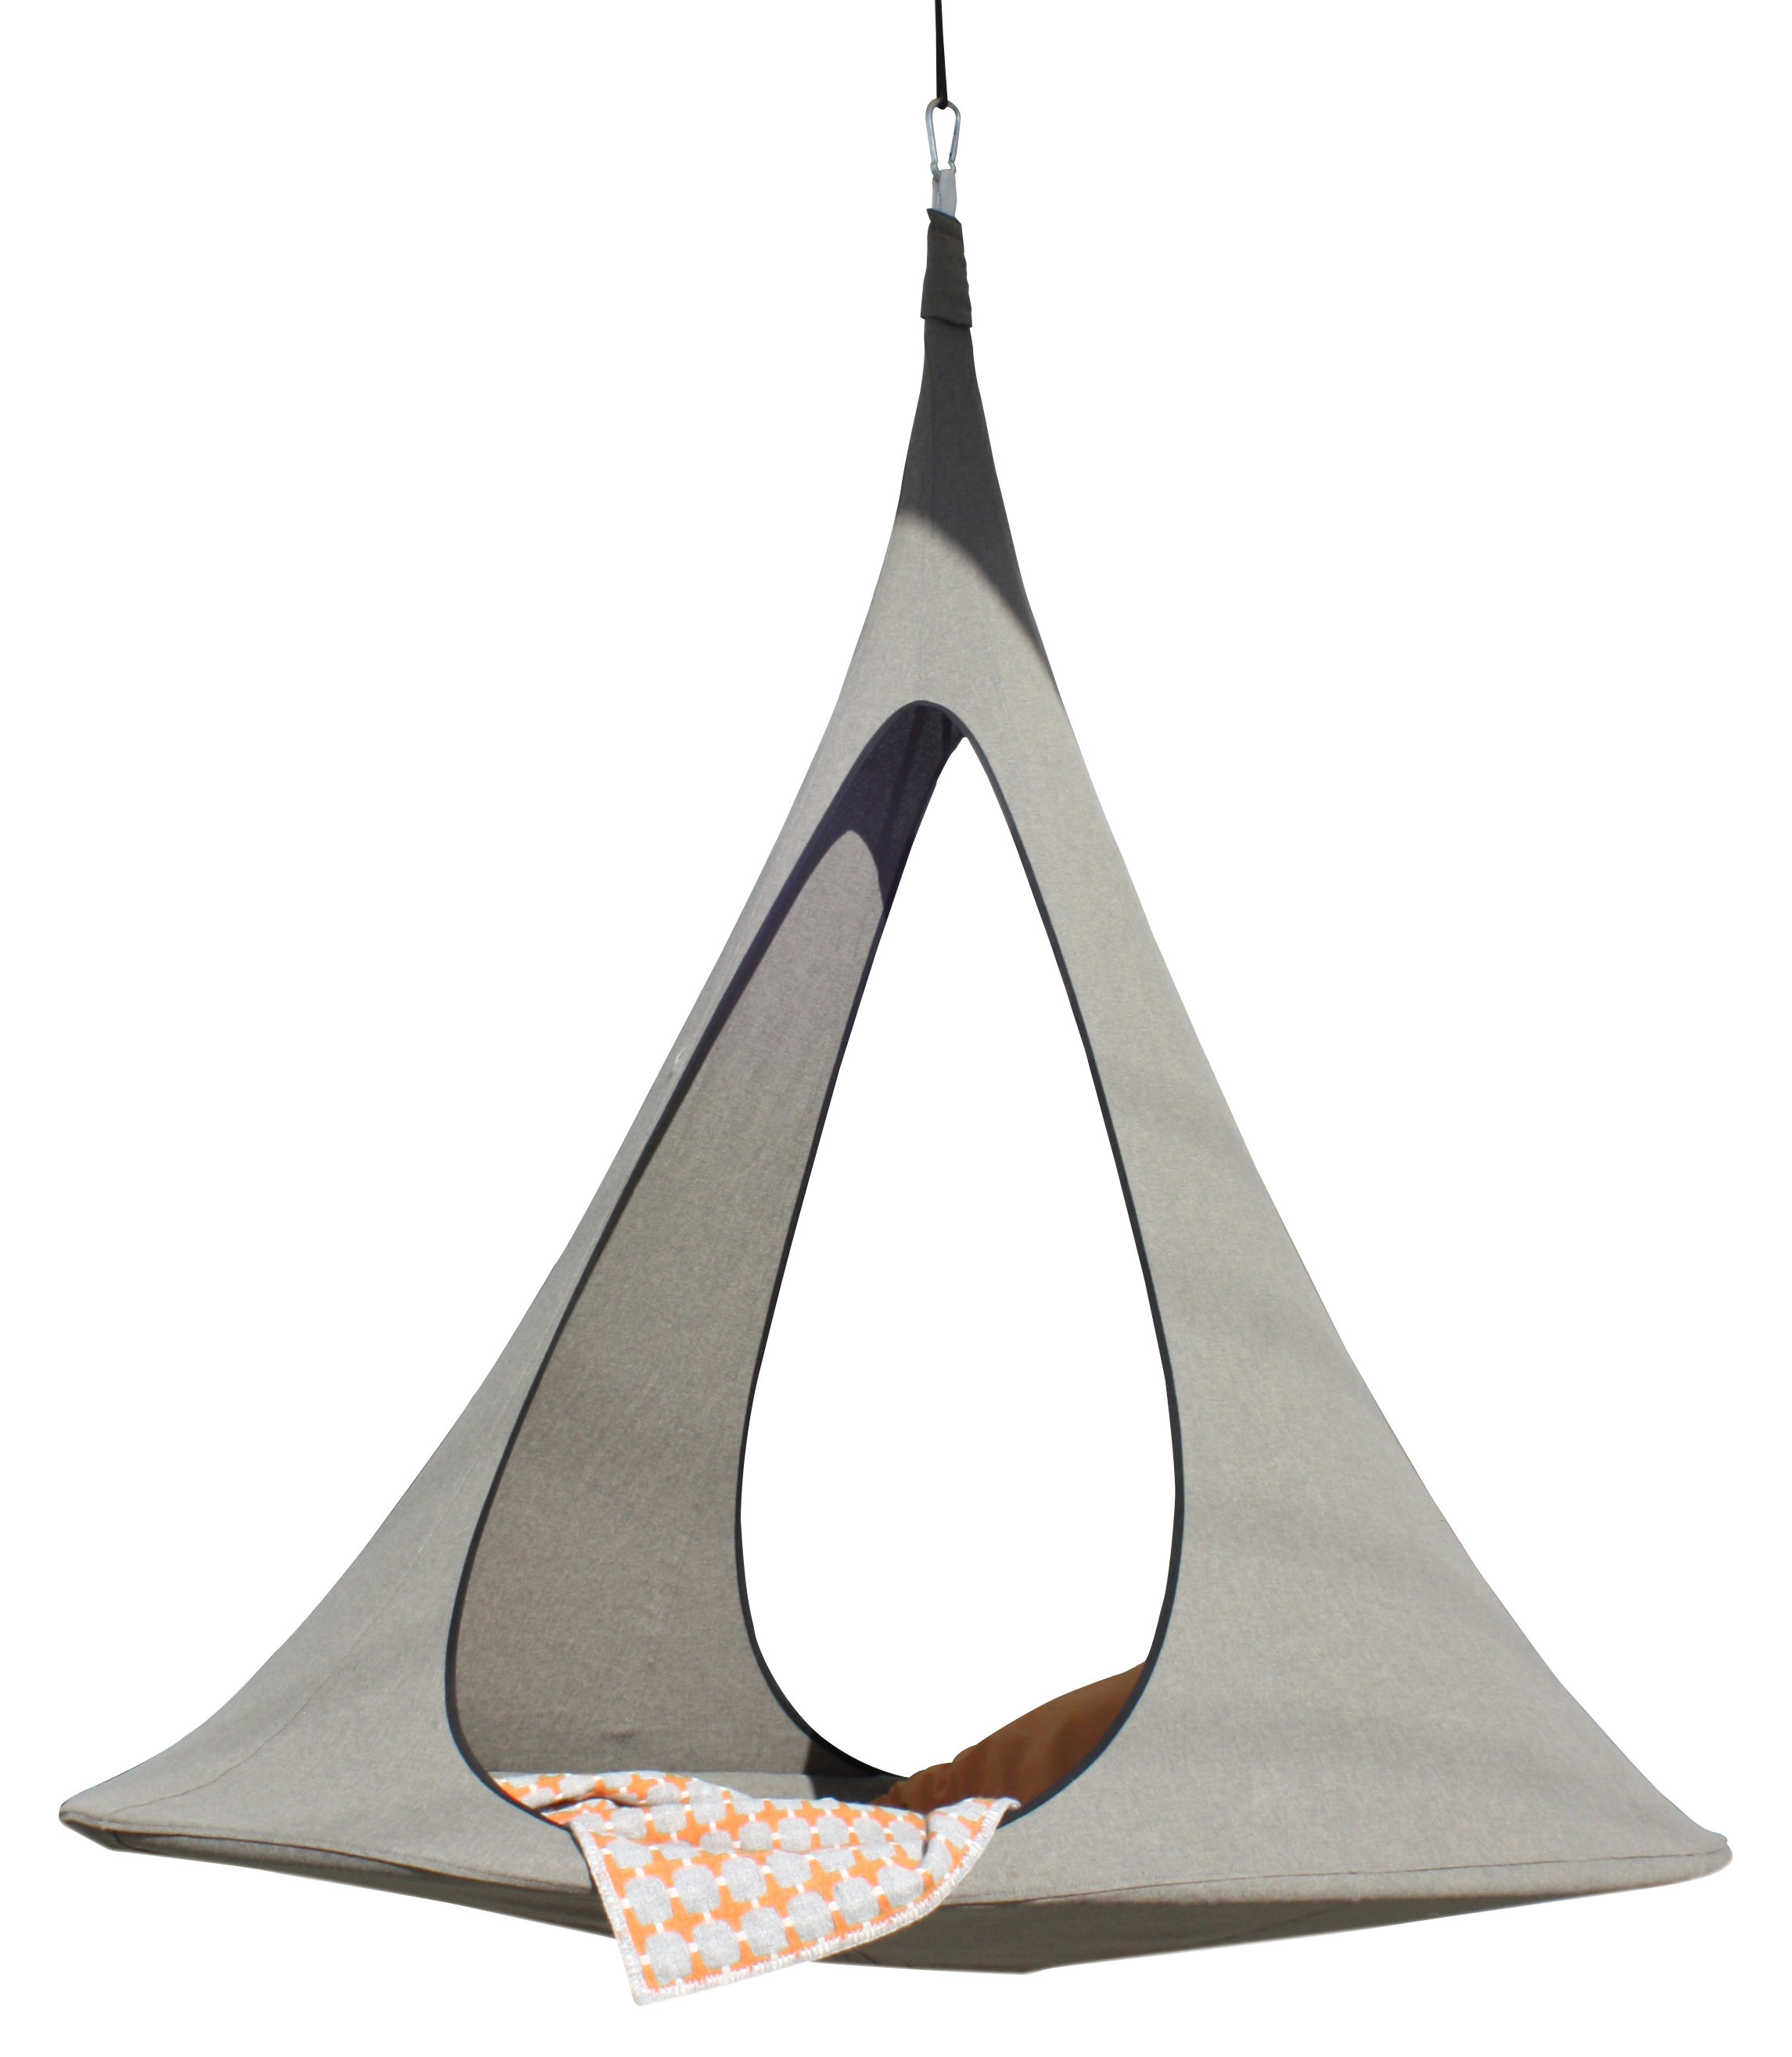 Cacoon Hanging Chair Songo Hanging Armchair Double Hanging Chair Ø Max 194 Cm By Cacoon